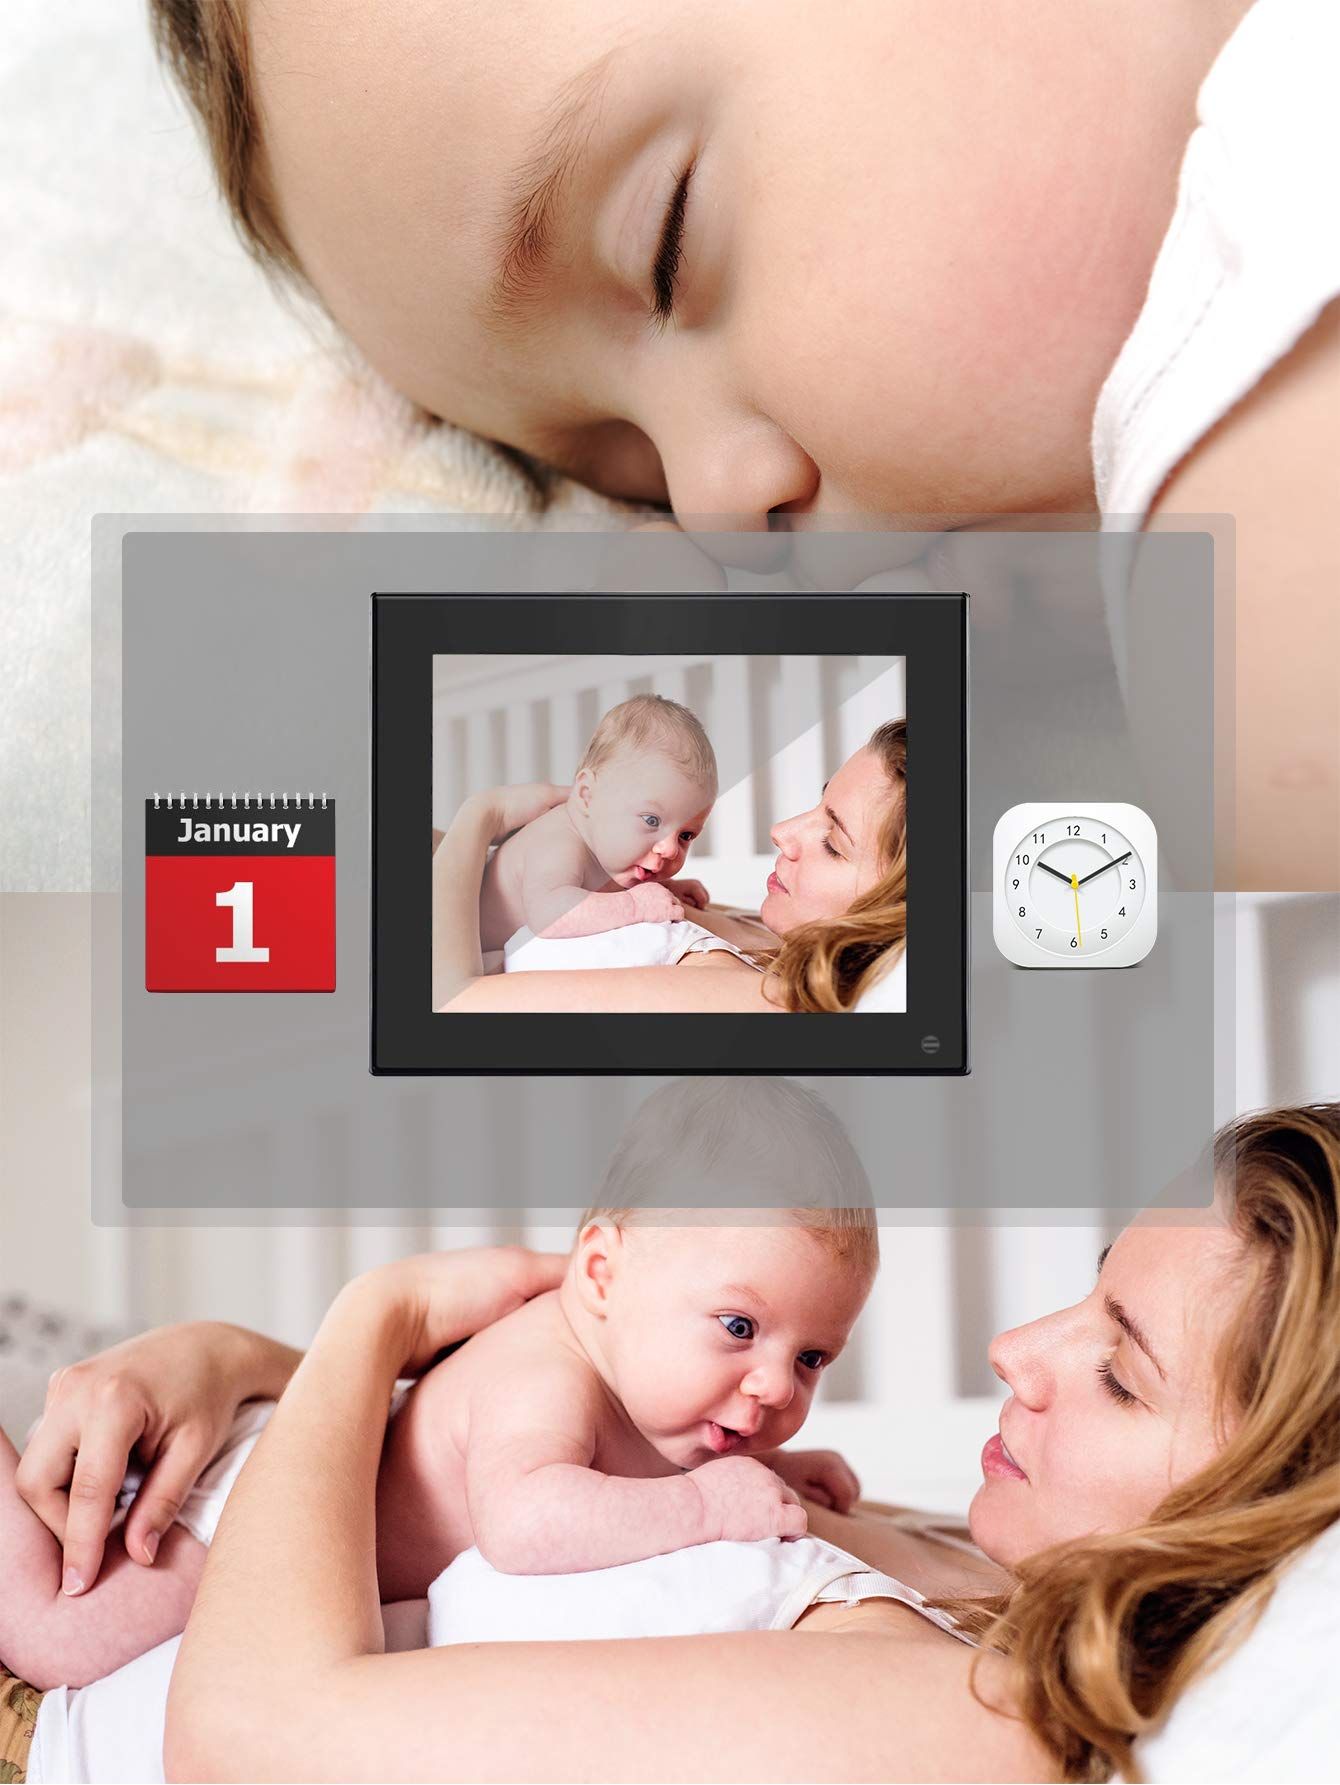 BSIMB Digital Photo Frame Digital Picture Frame 8 Inch 1024×768 Resolution Display with Calendar,Music,Video and USB,SD Card and Remote Control(M03 Black) by Bsimb (Image #6)